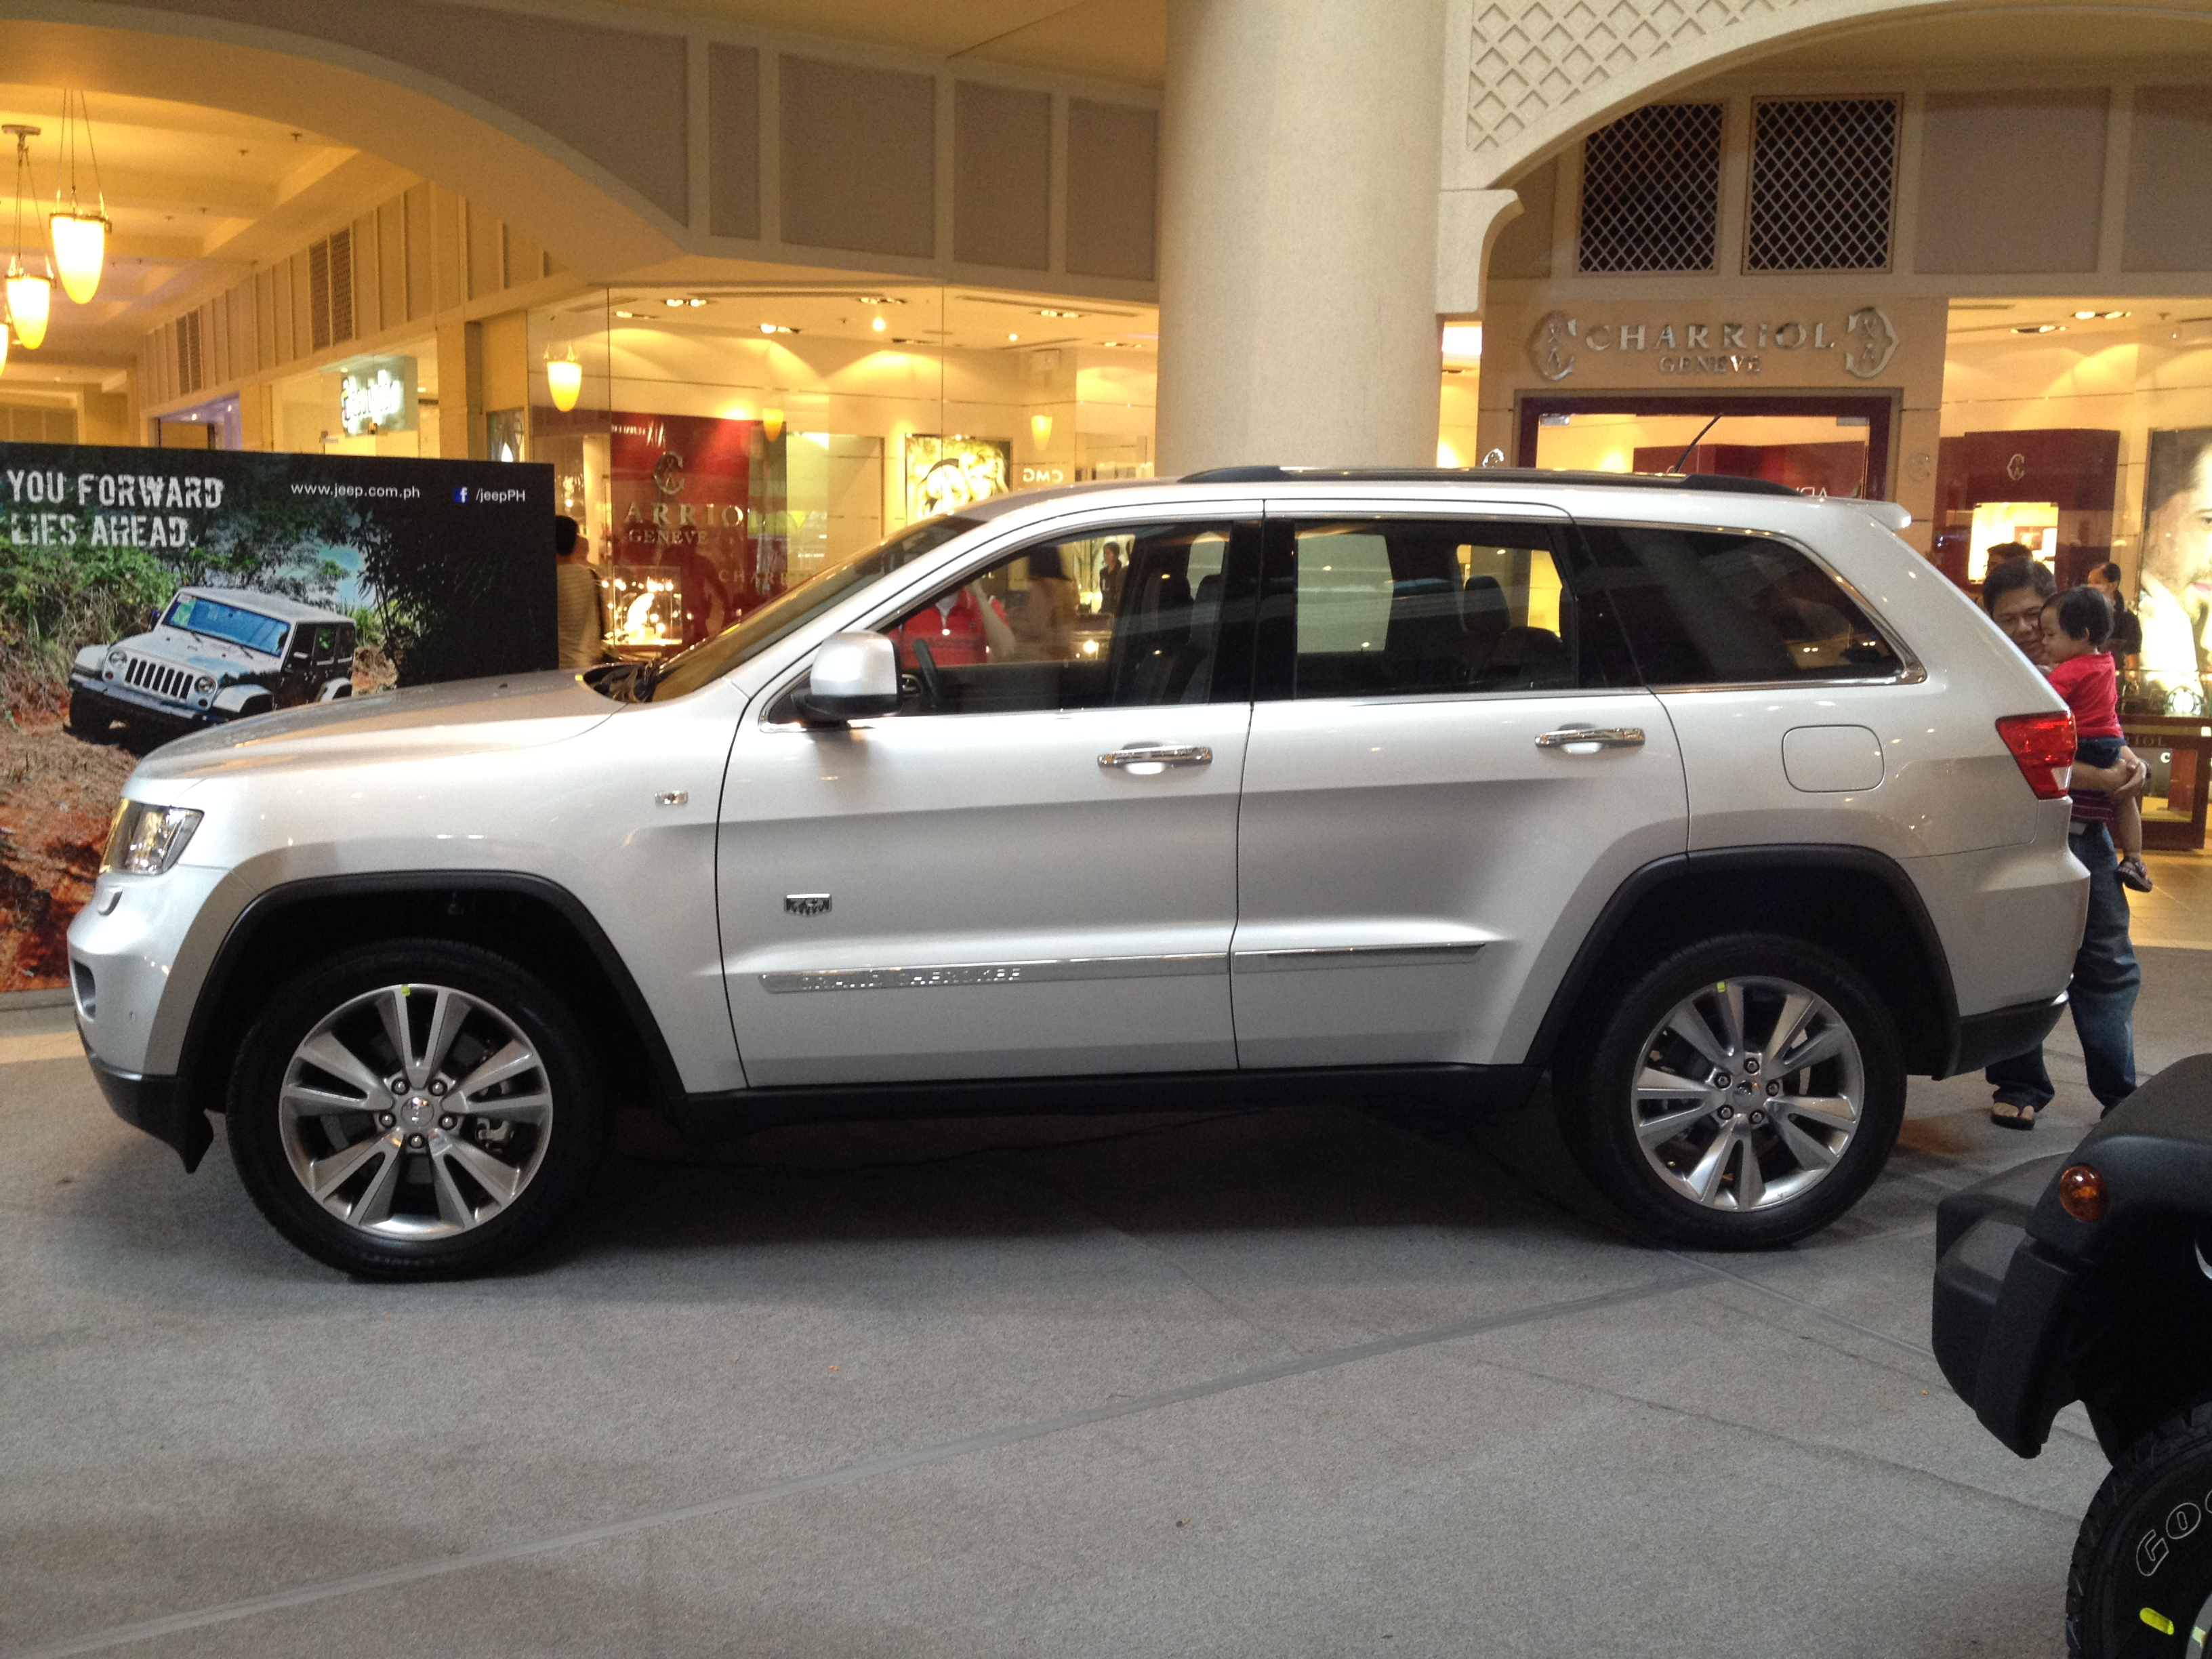 File:Jeep Grand Cherokee Display.JPG